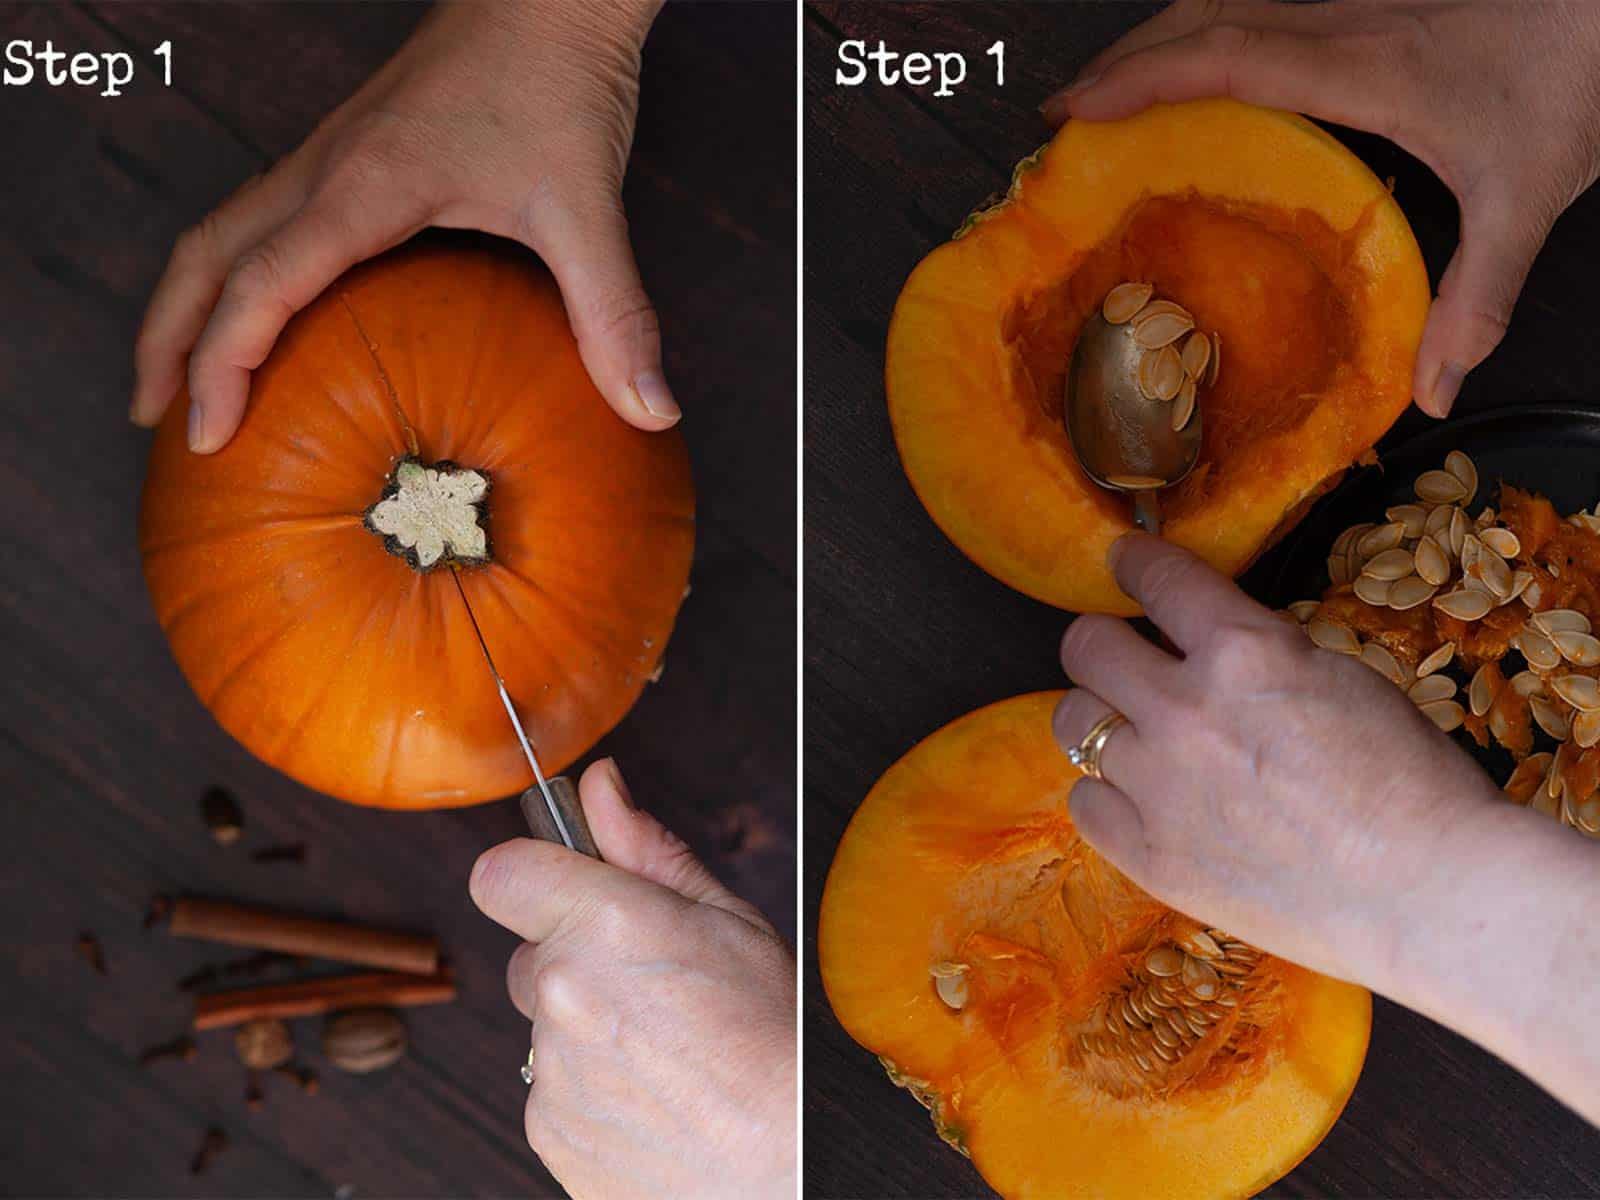 Two images showing a pumpkin being cut and prepared for roasting